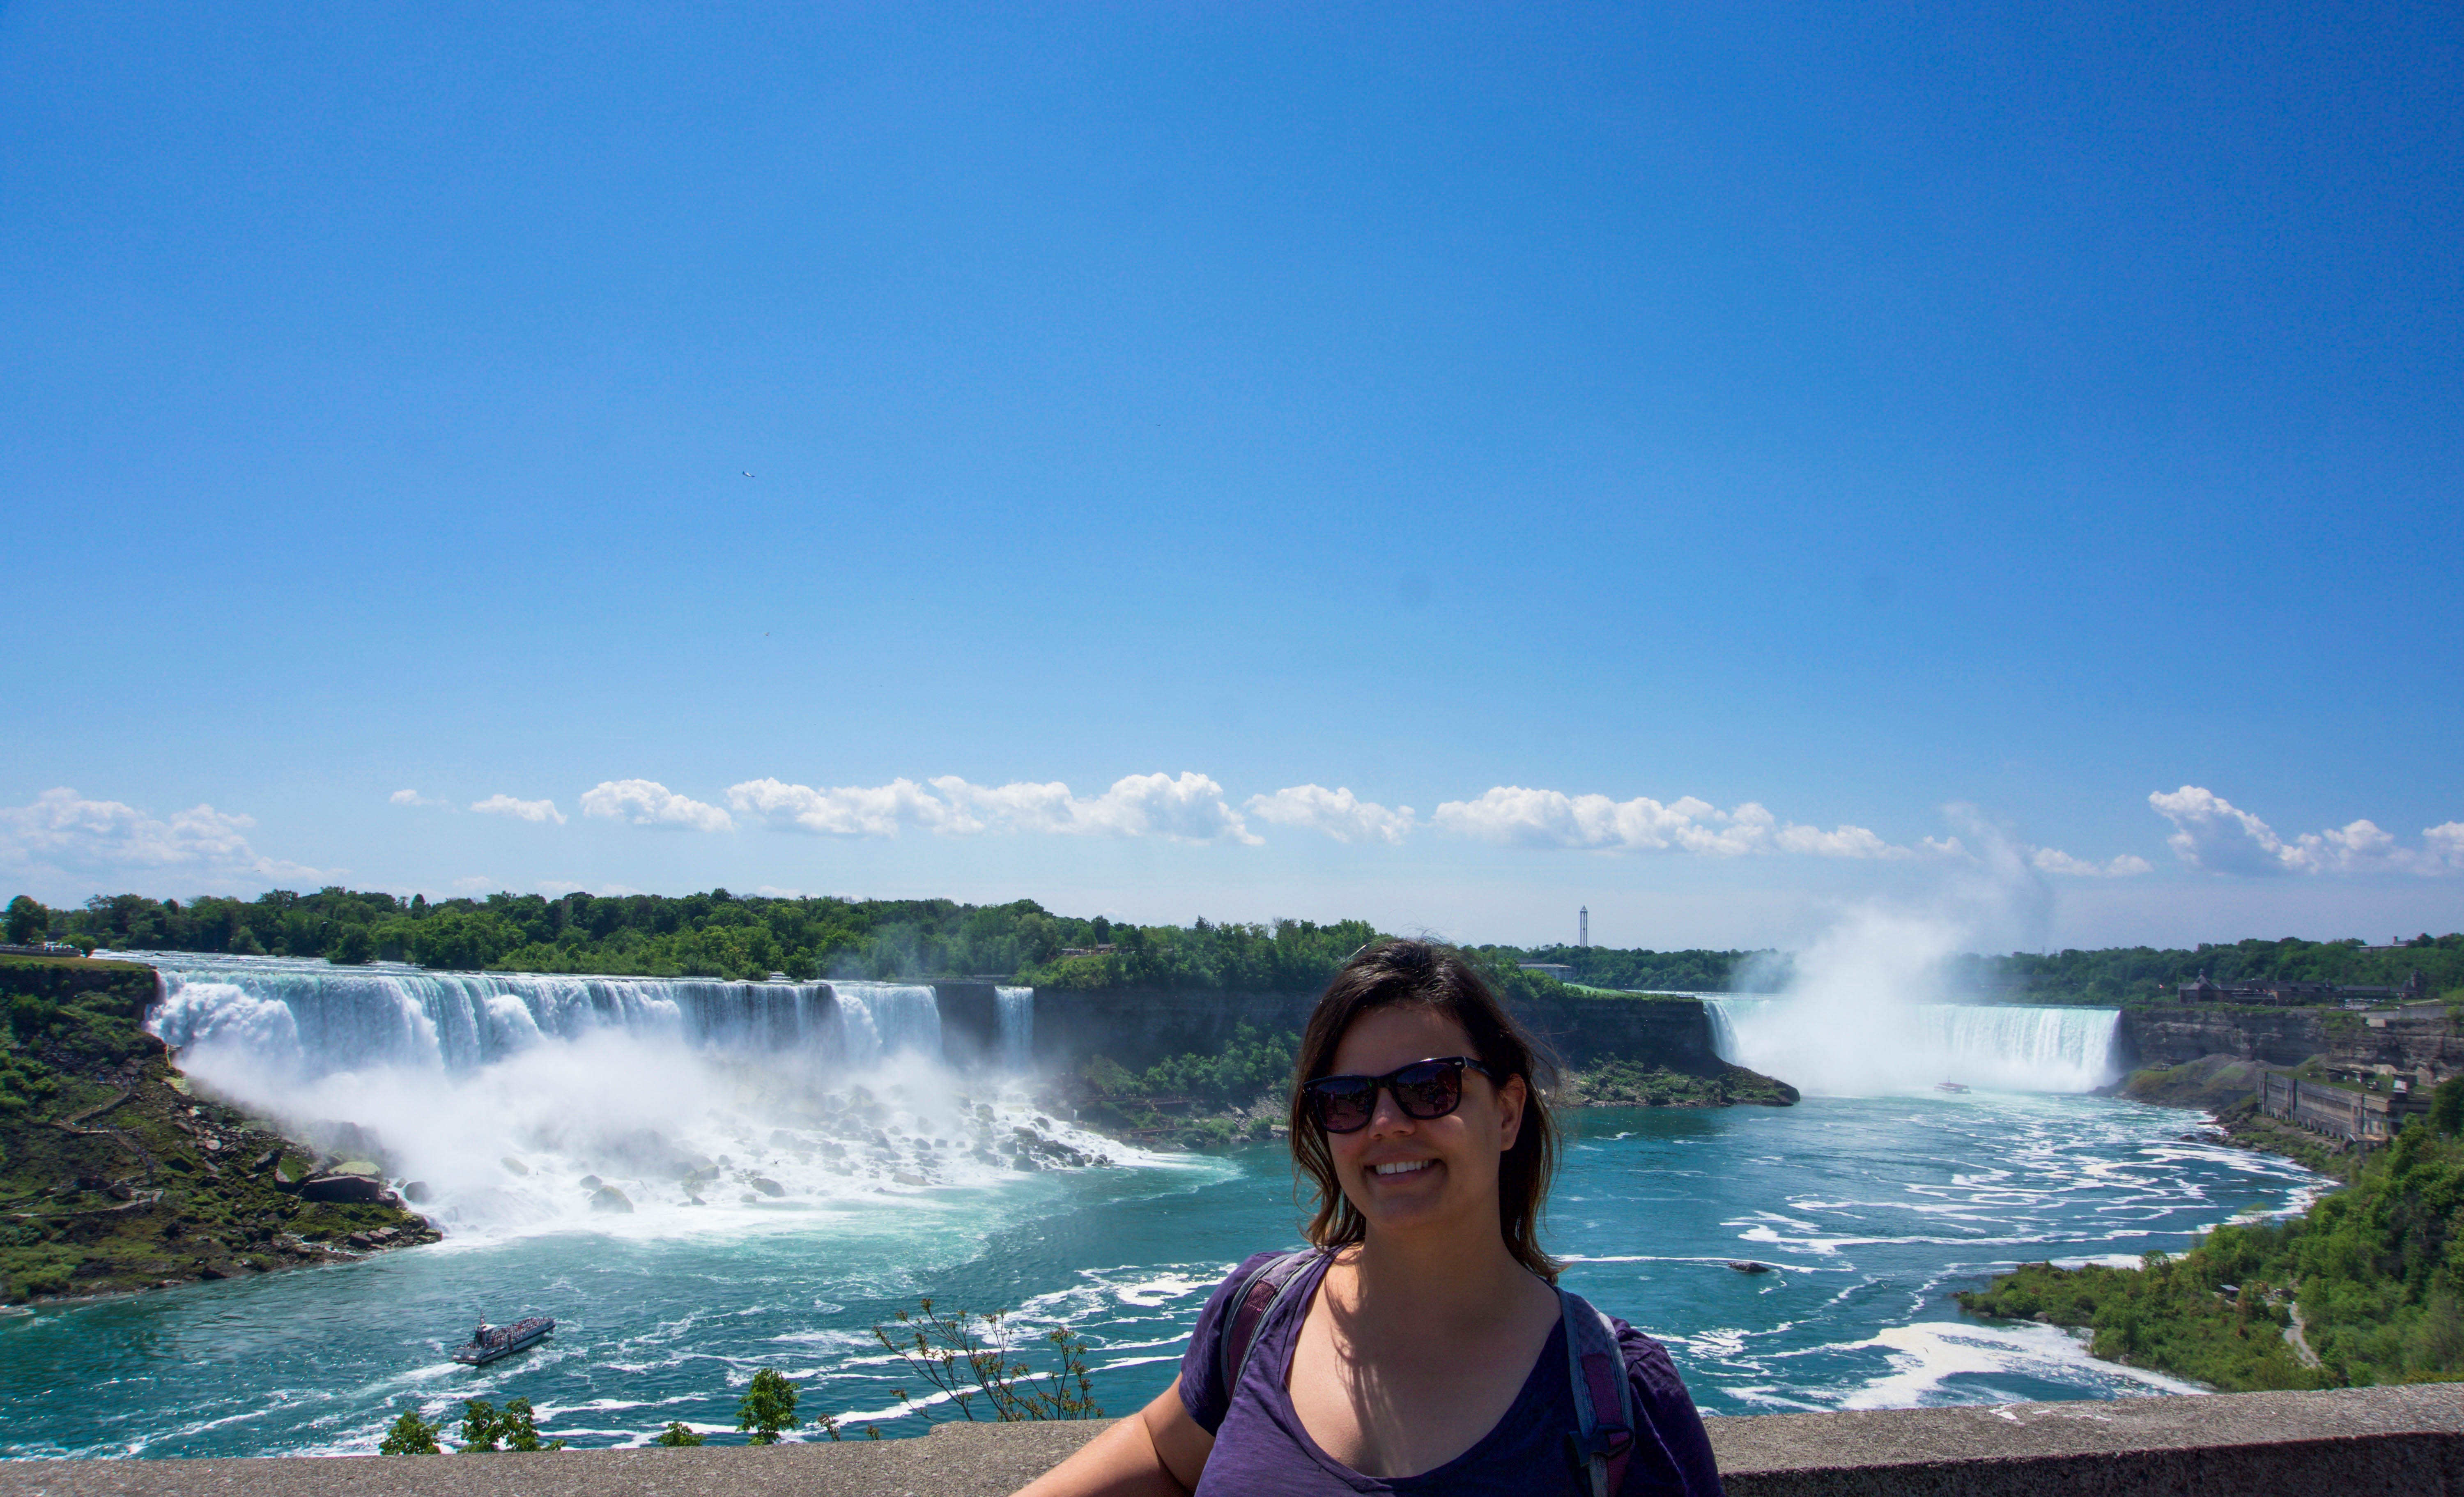 Enjoying the views of the falls from Canada